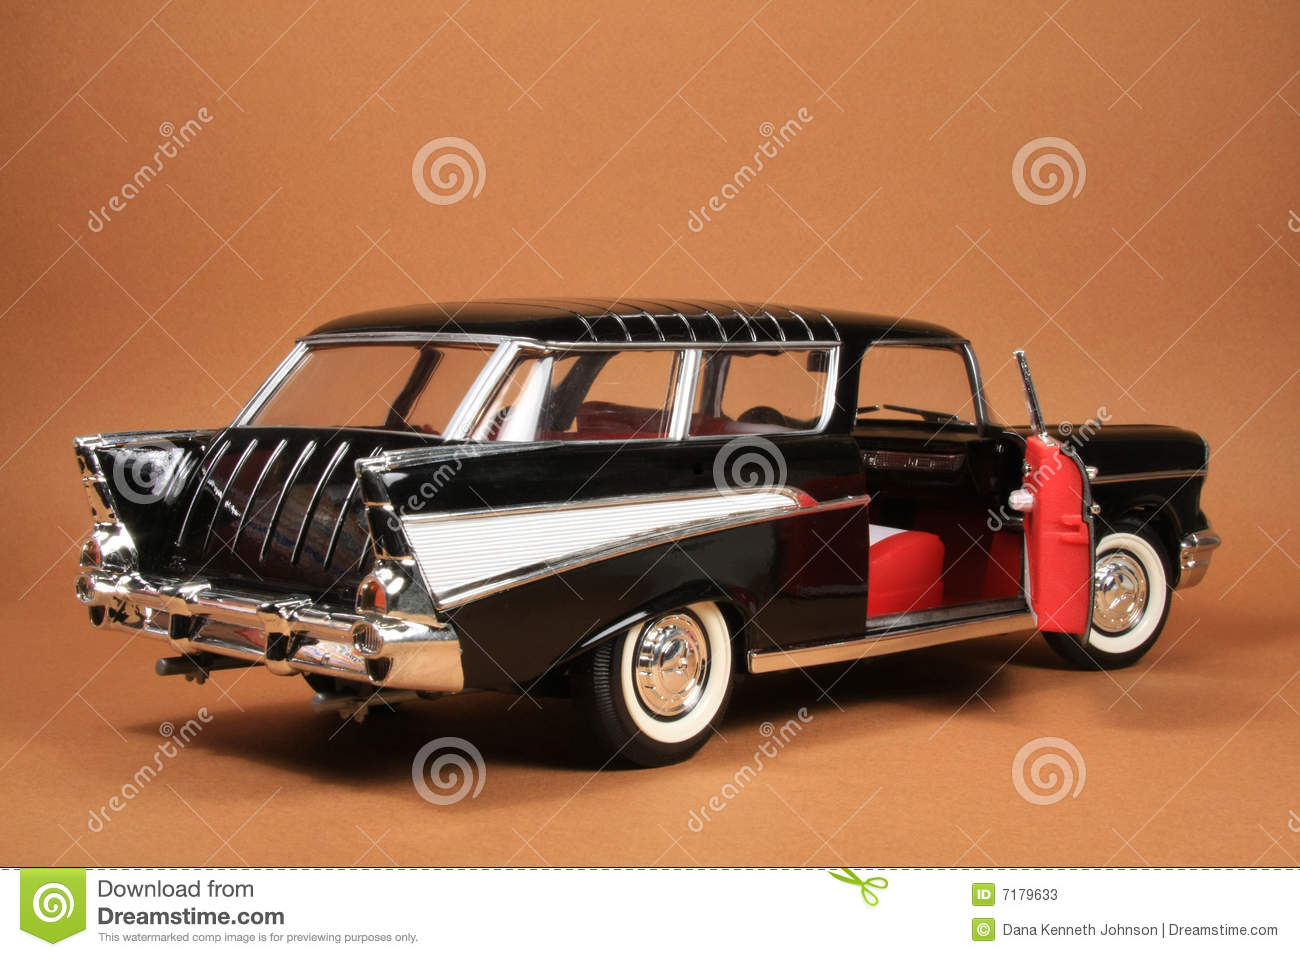 Chevrolet Nomad 1957 Stock Image Of Cast Vehicle 7179633 Chevy Wagon